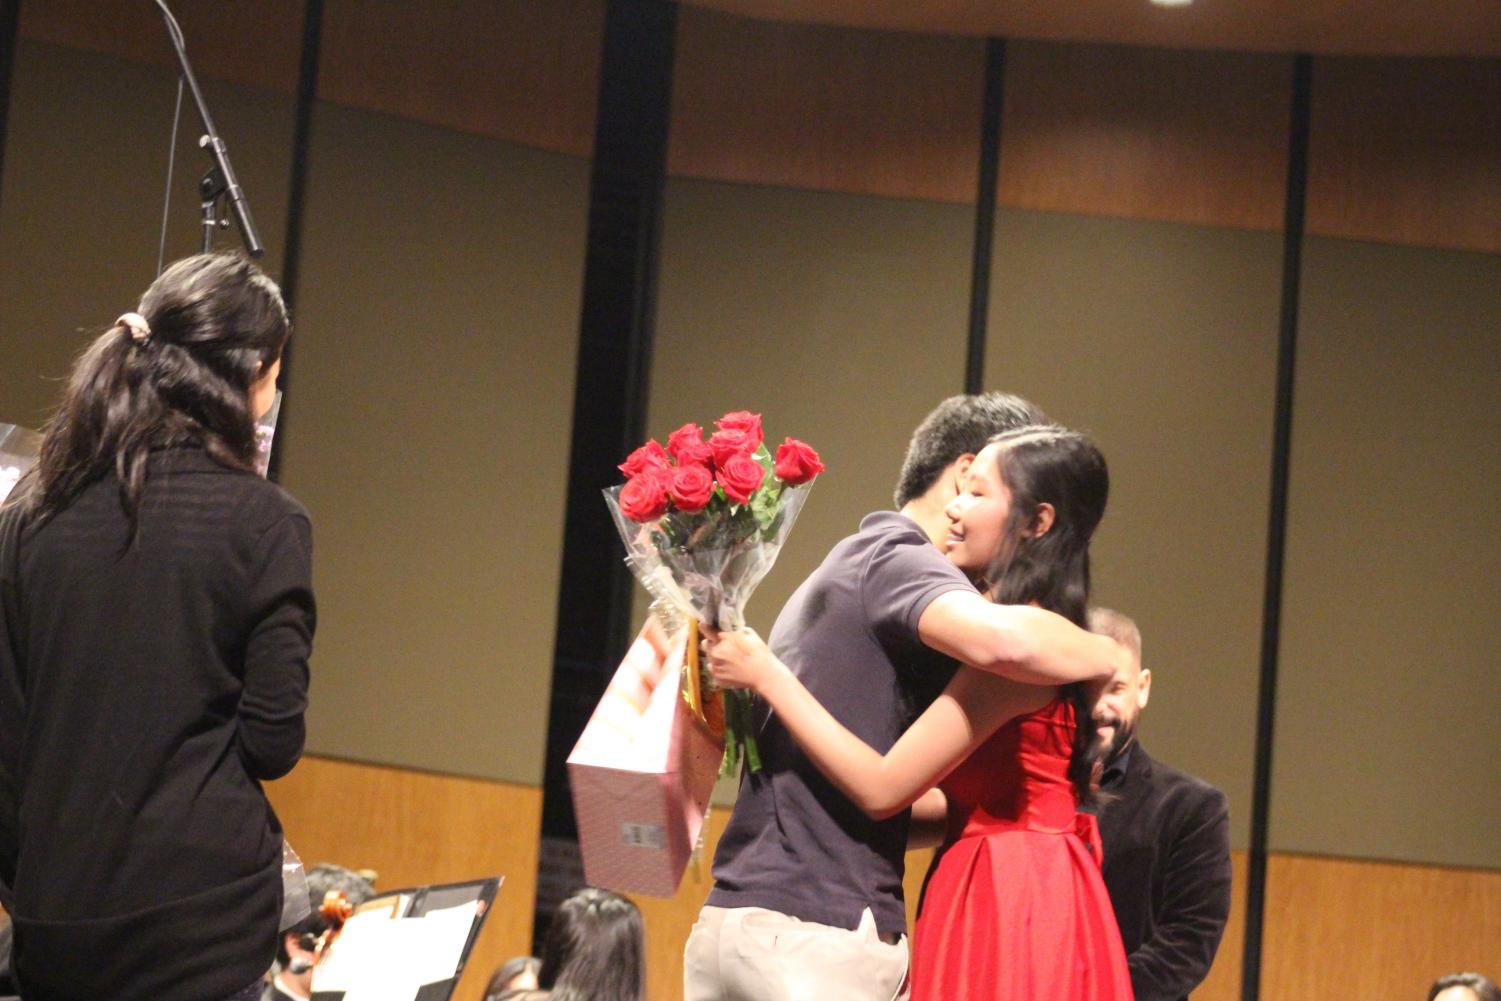 Michael Hu '19 congratulates Stephenie Li '19 on her performance. Li was the soloist, and performed Ravel's Piano Concerto in G Major, Movement No. 1